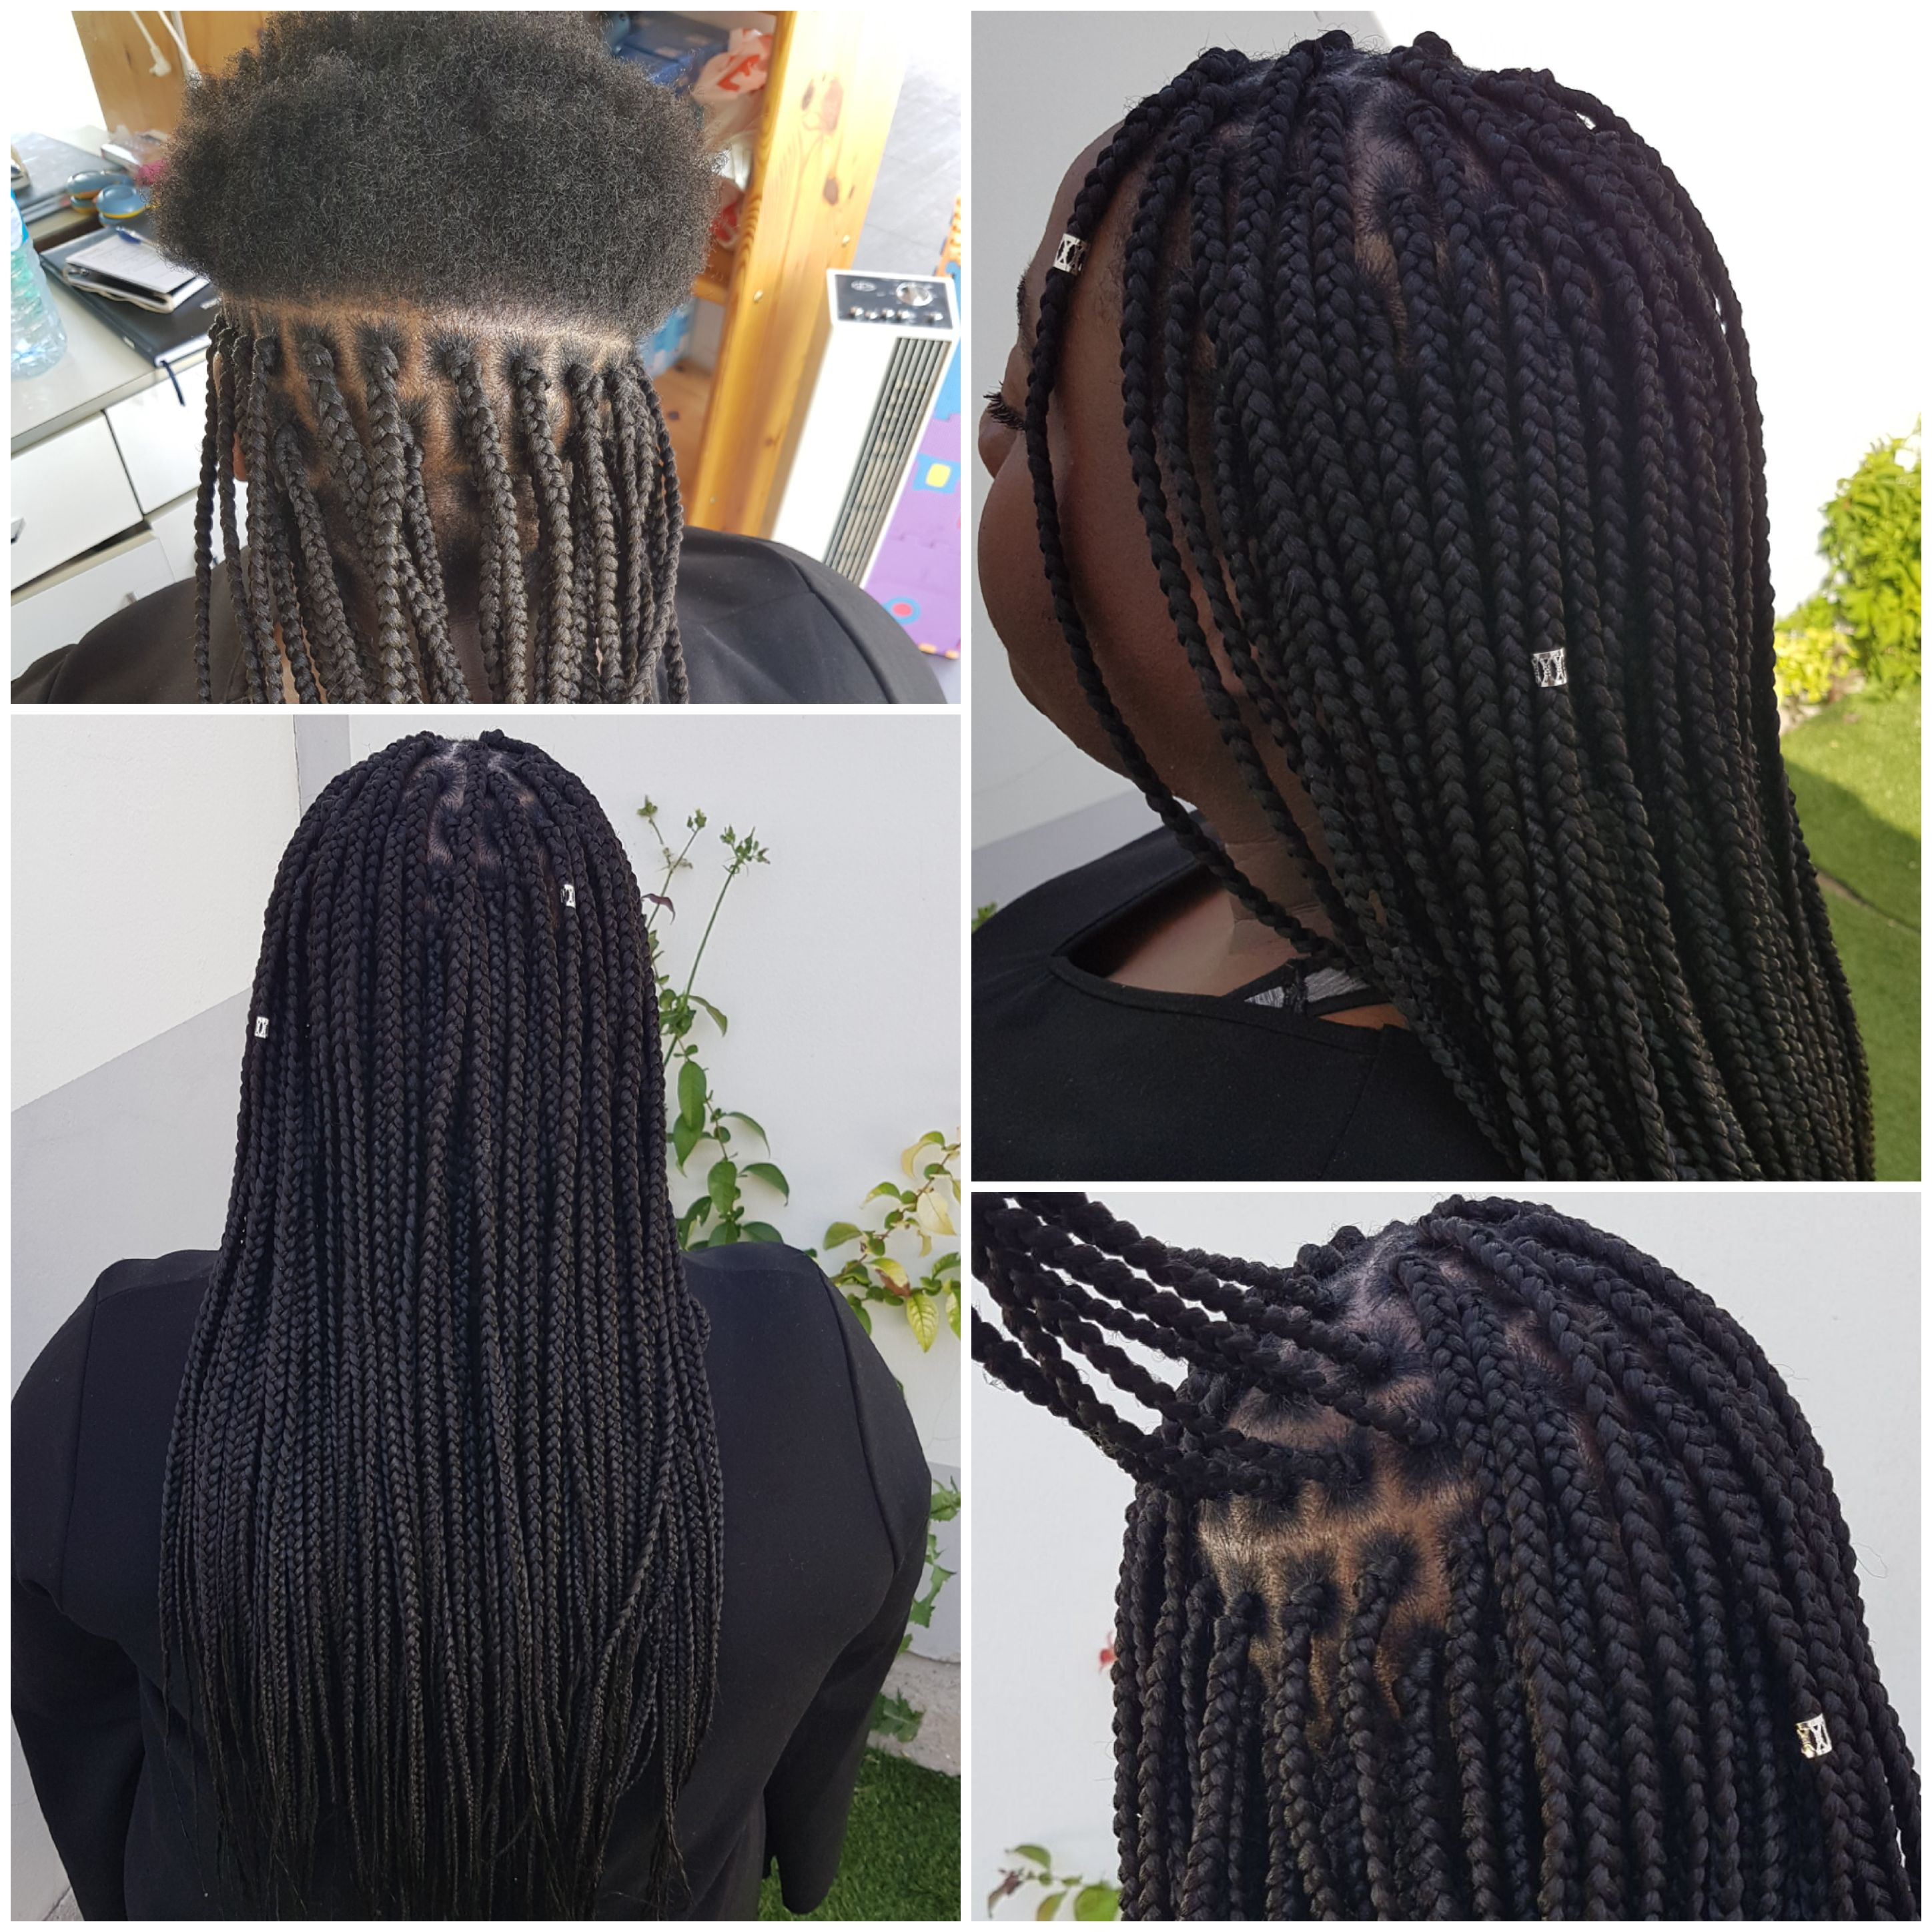 salon de coiffure afro tresse tresses box braids crochet braids vanilles tissages paris 75 77 78 91 92 93 94 95 VJITFYGM